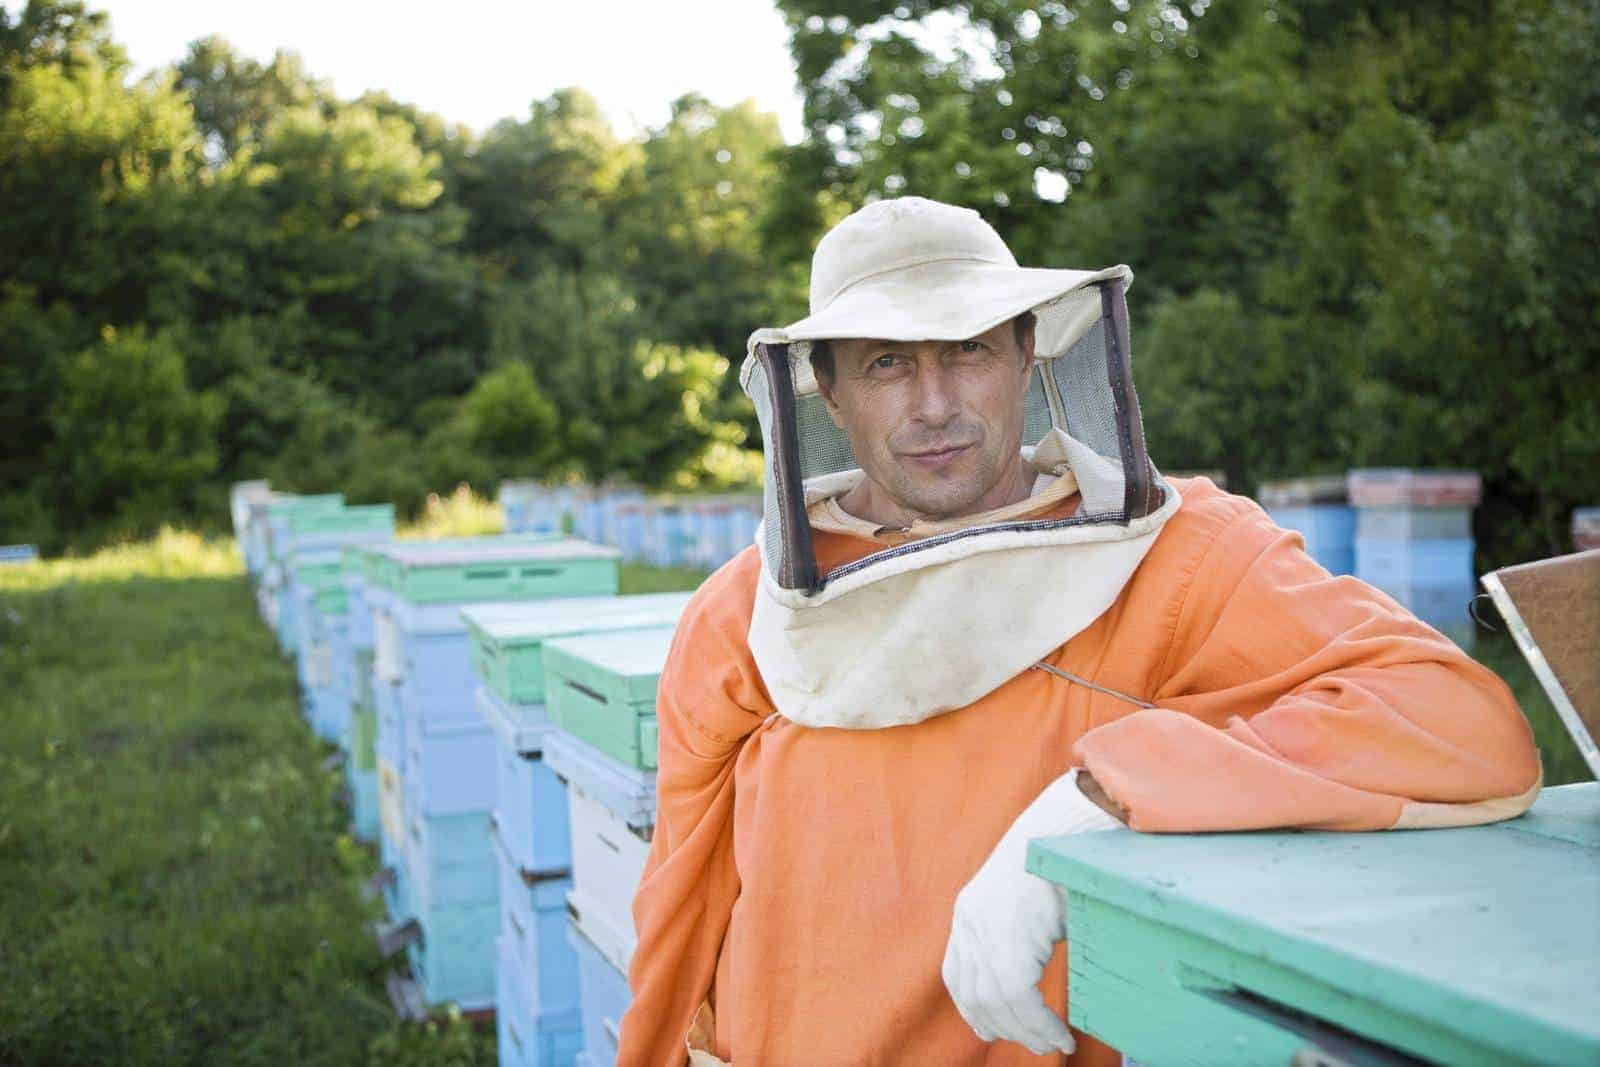 How hard work is it being a beekeeper?